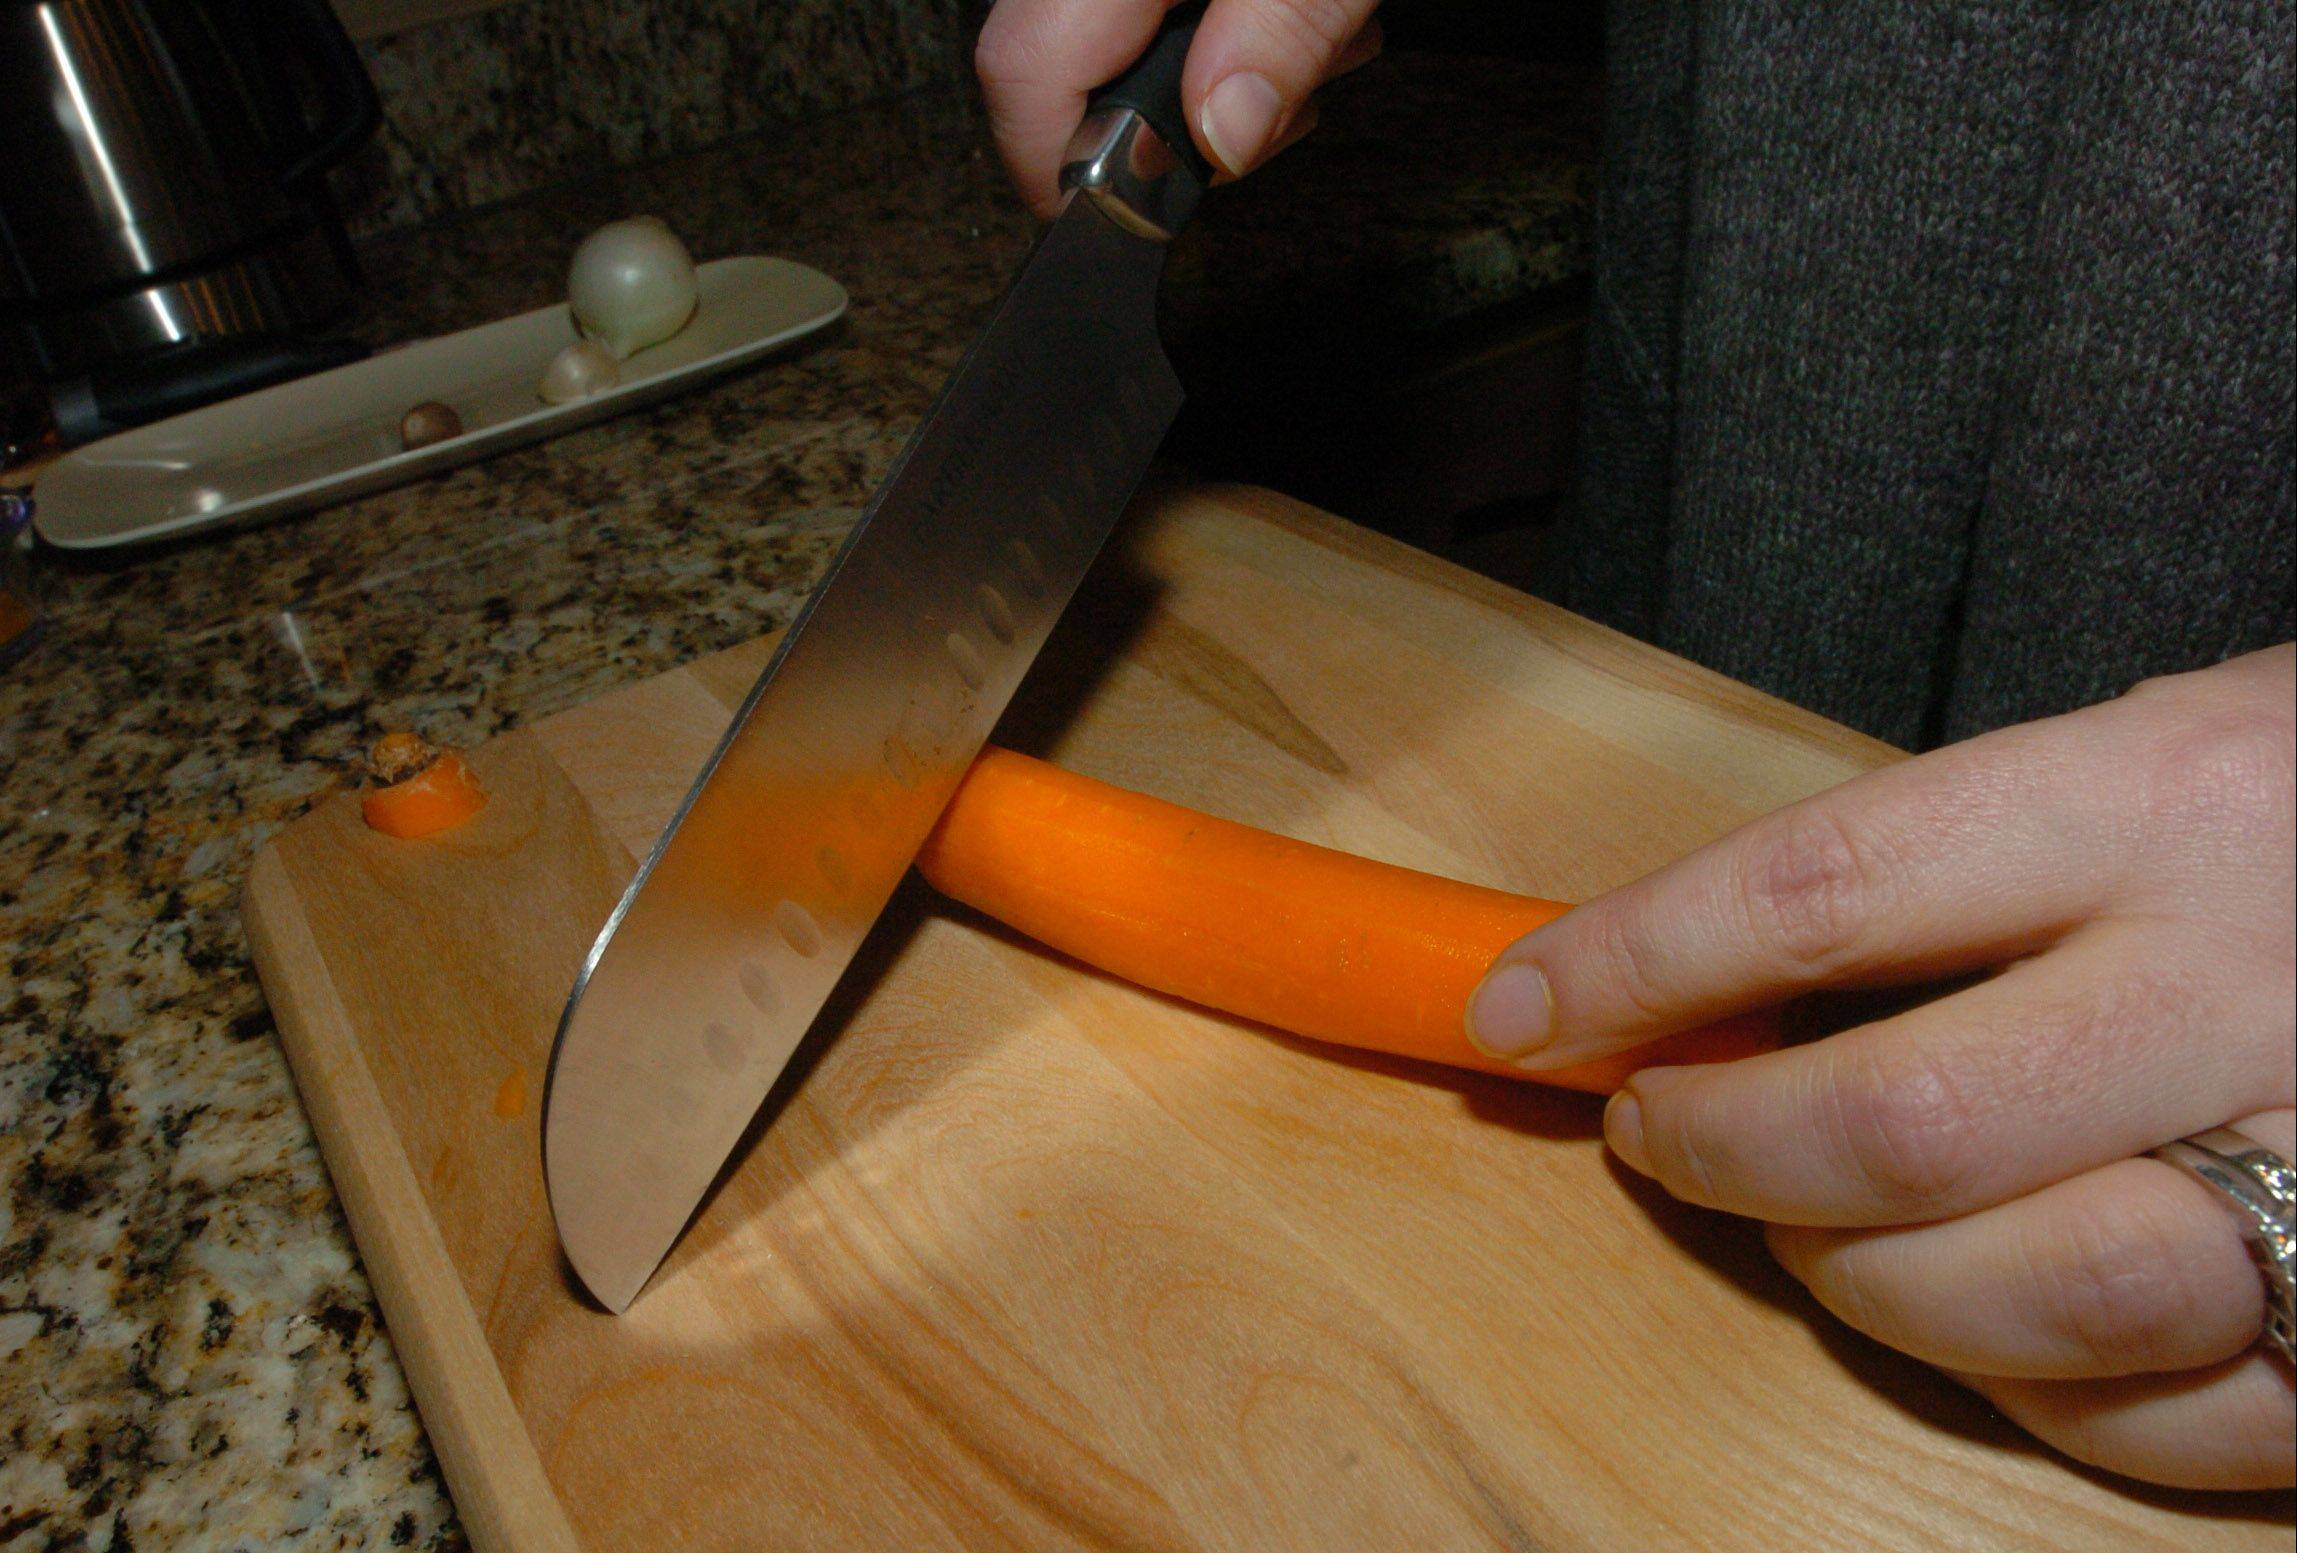 France Cevallos slices carrots for her Creamy Autumn Carrot Soup.